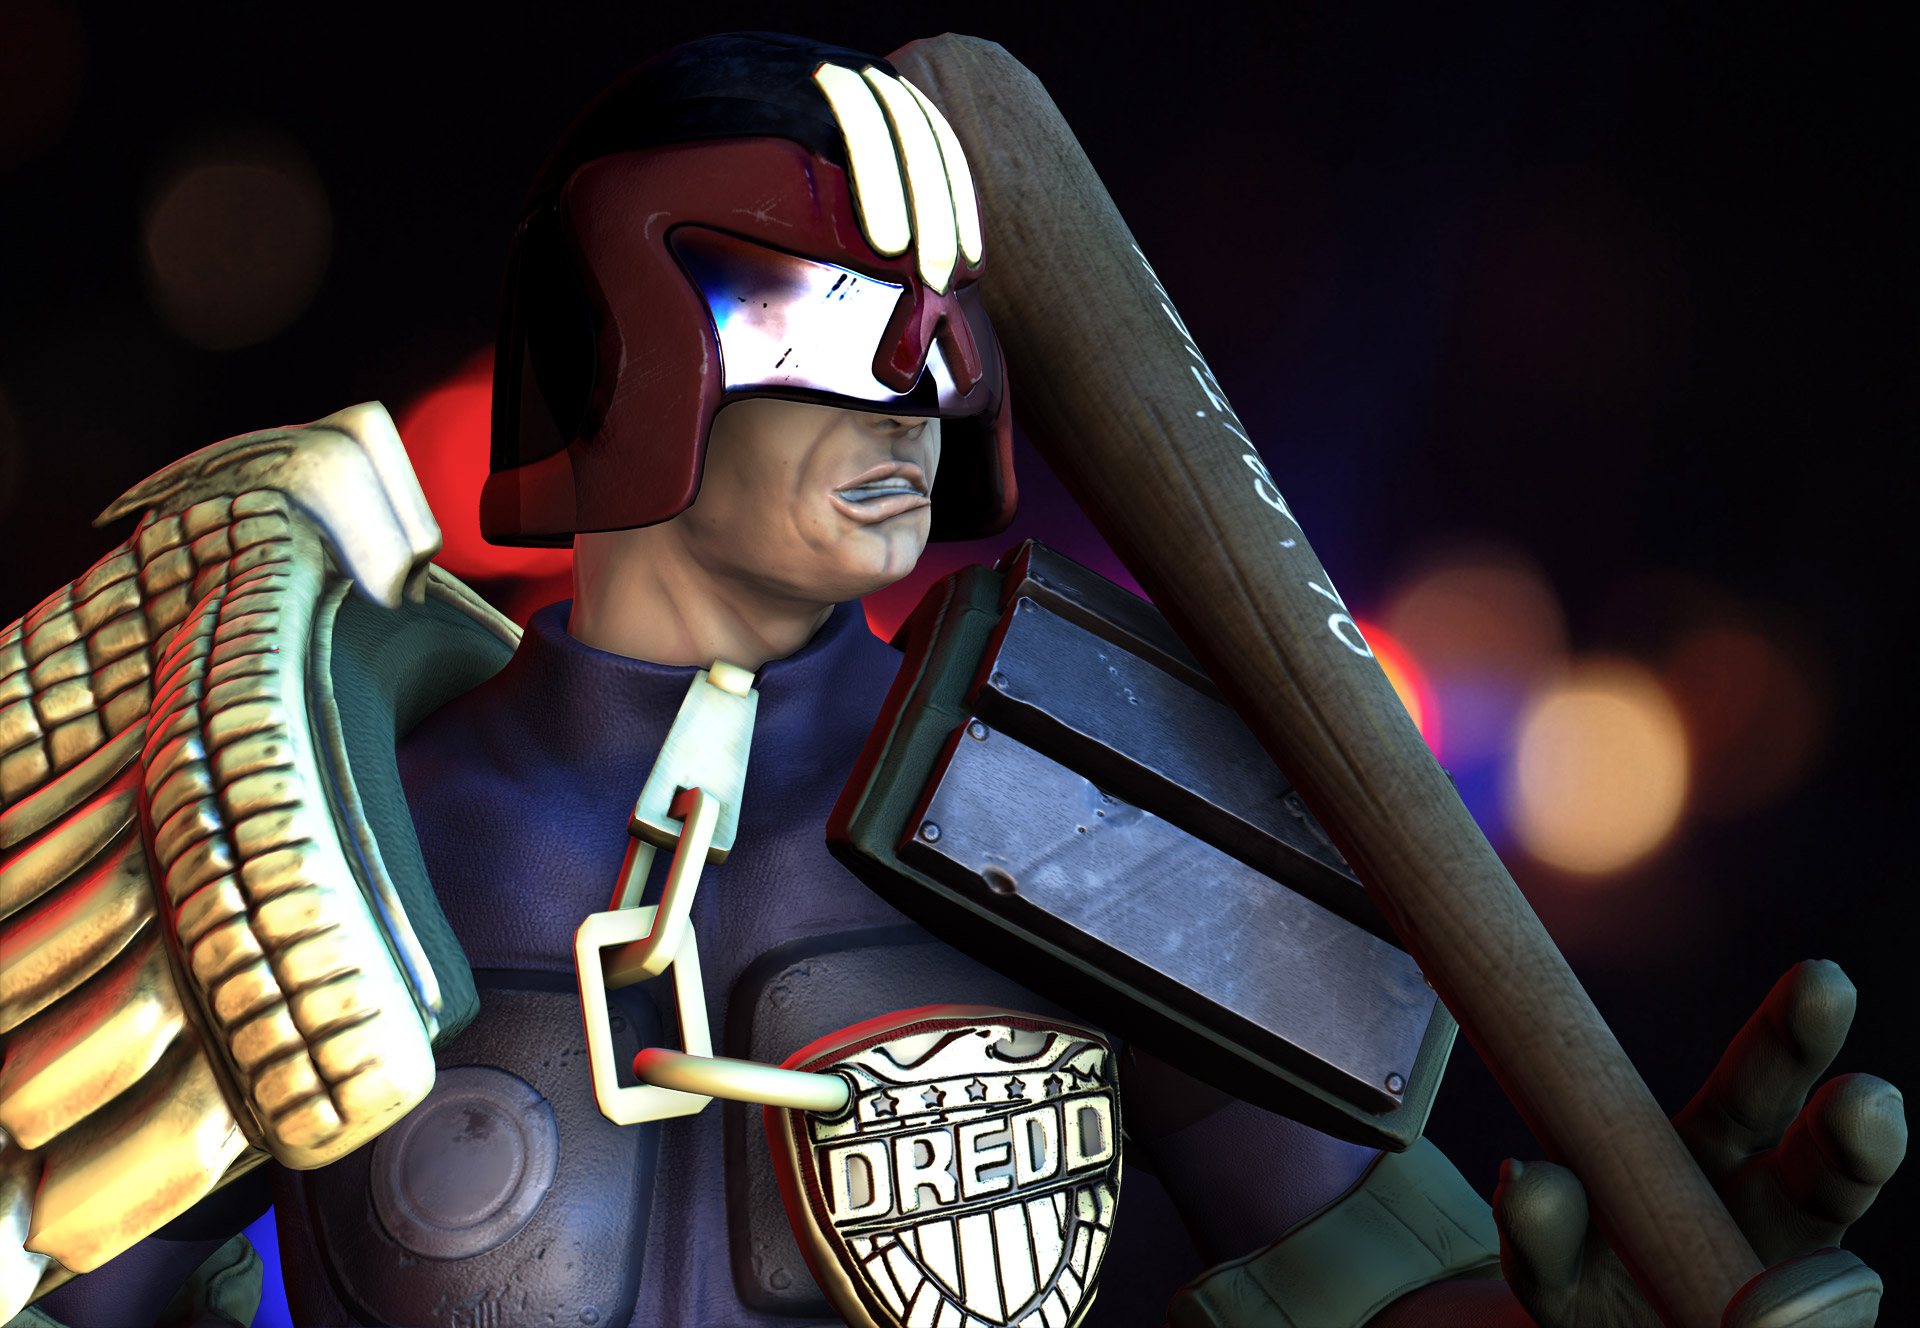 judge-dredd-close-up.jpg